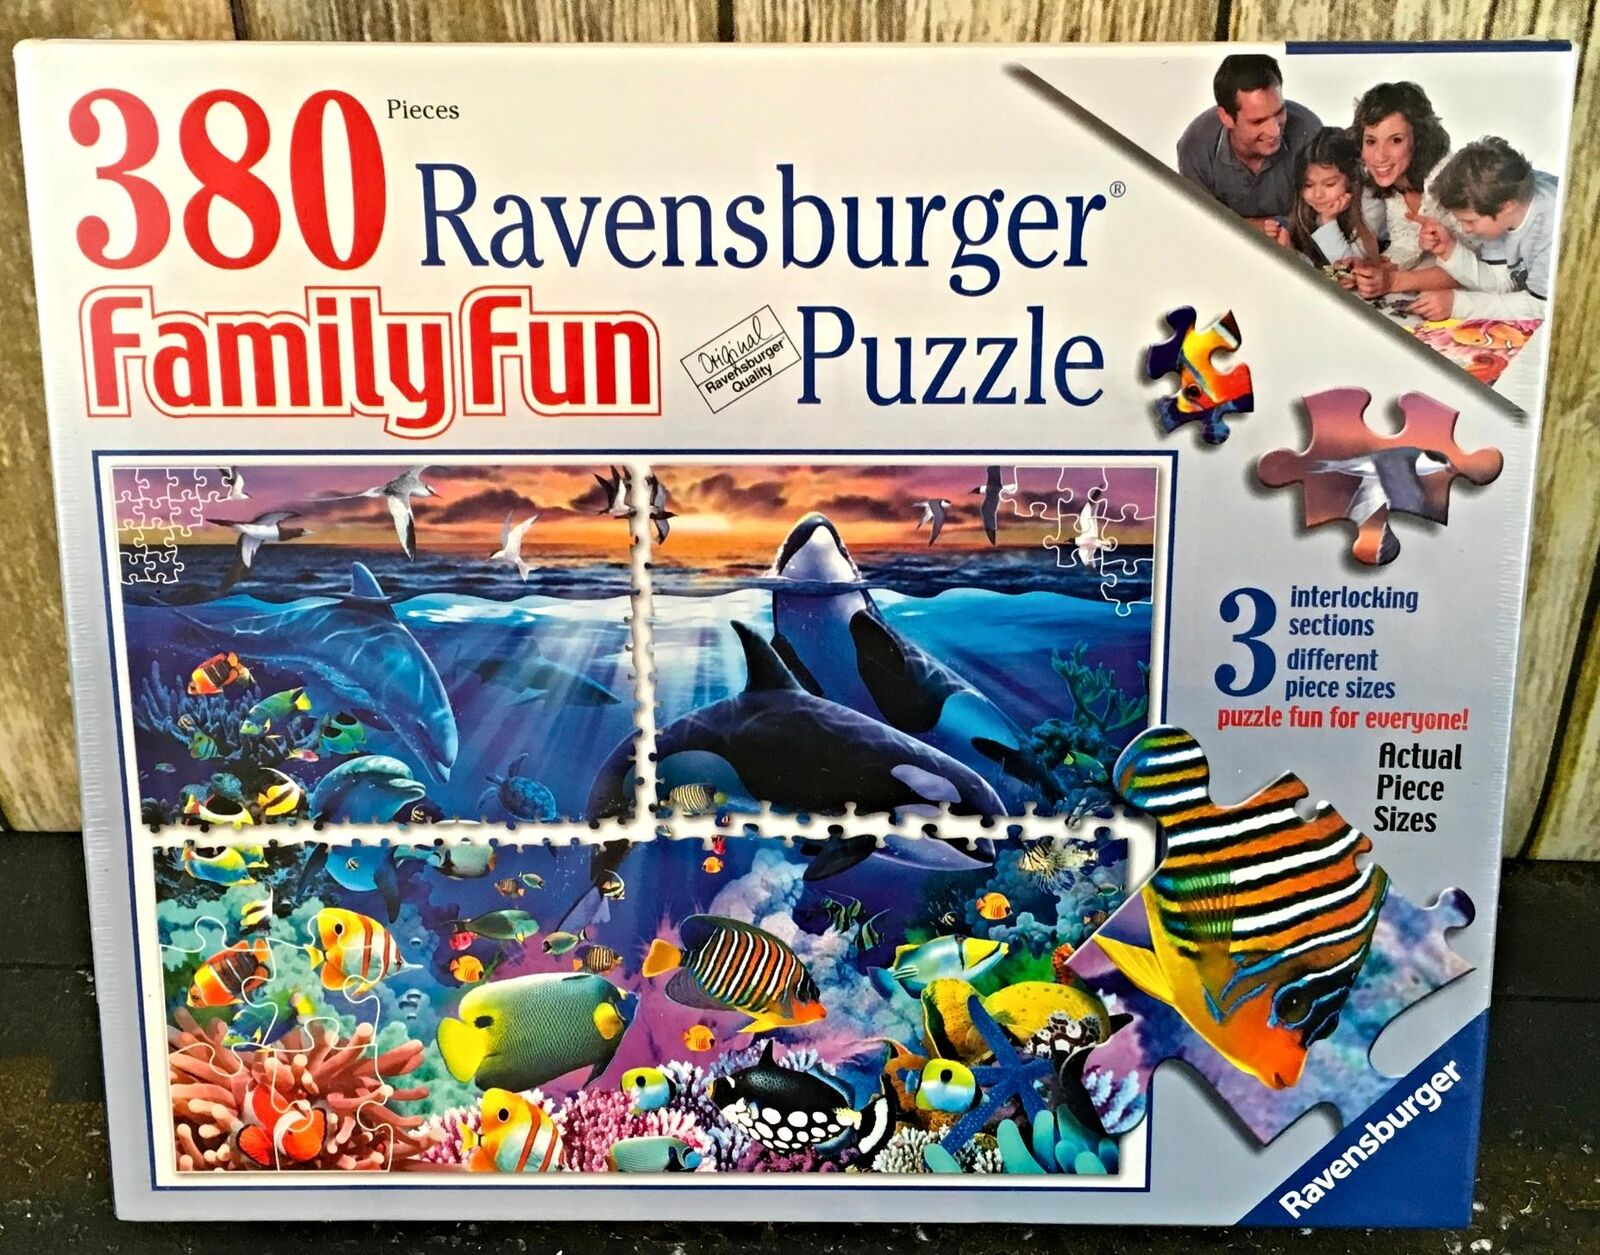 Ravensburger Puzzle Family Fun 380 Pieces Ocean Marvels Dolphin Fish Coral